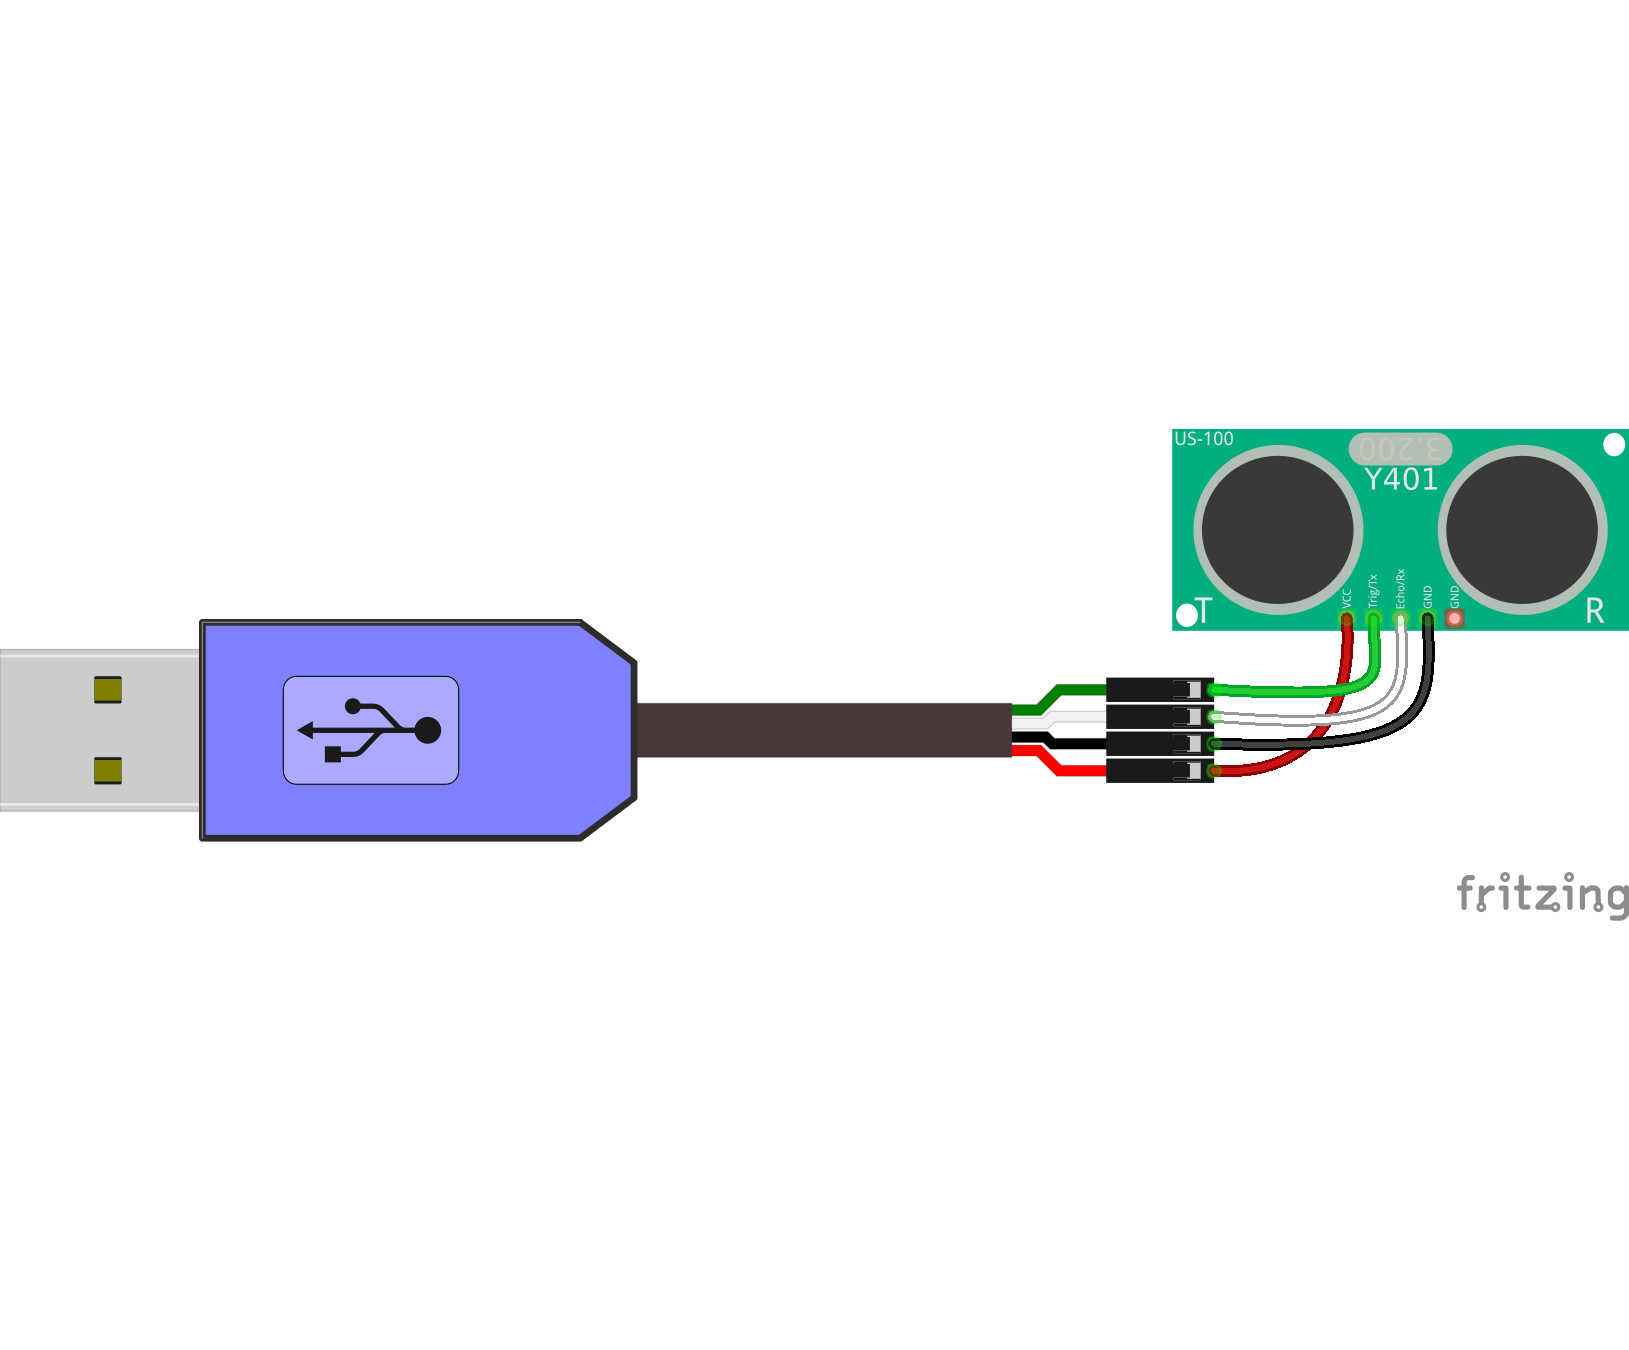 adafruit_products_US-100_USBSerial_UART_bb.png